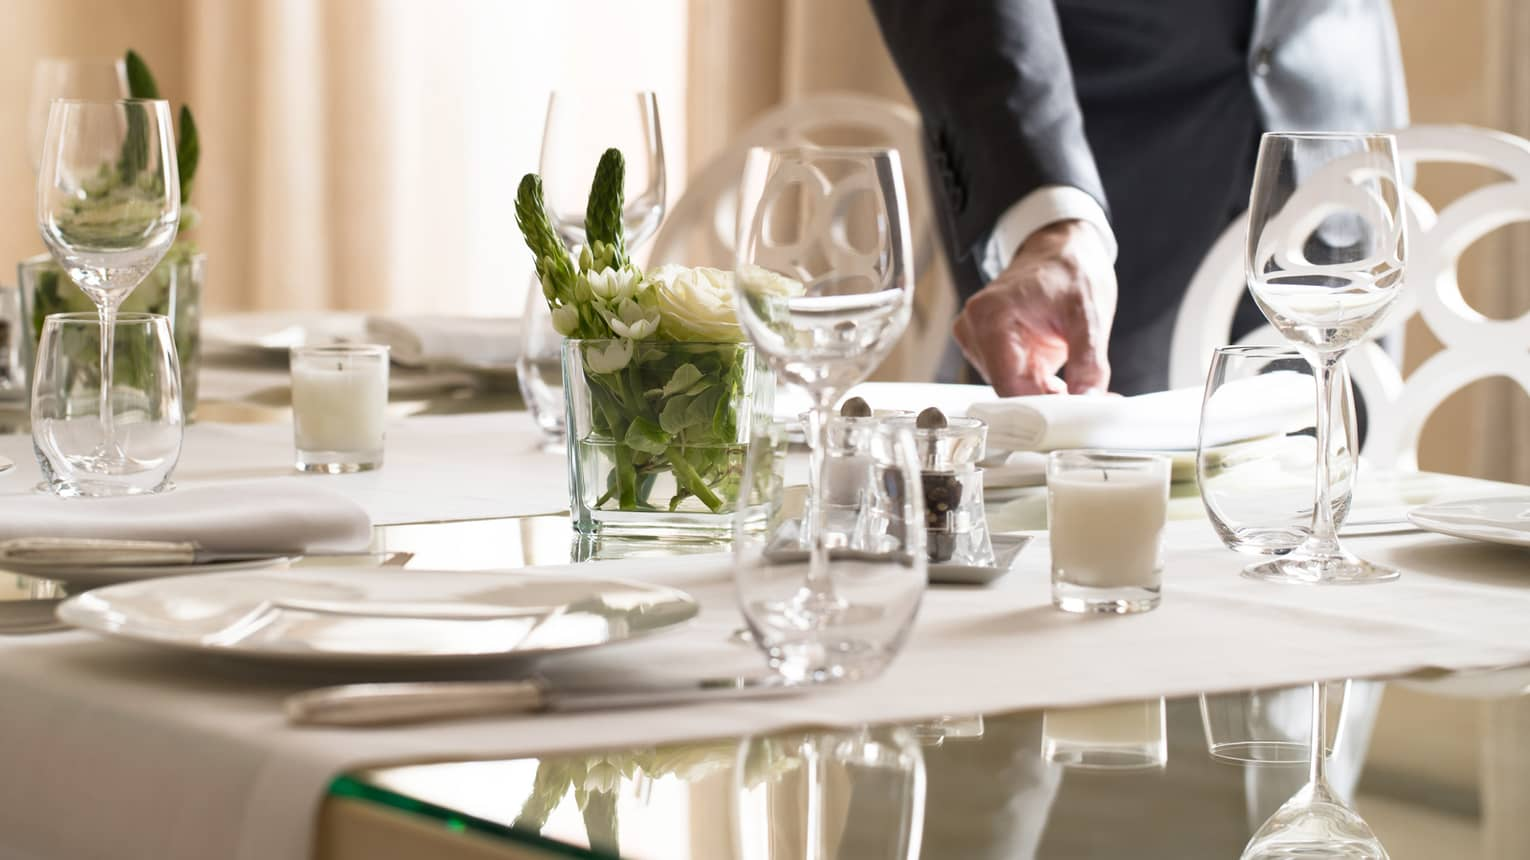 Hotel staff places napkin on small, elegant dining table in sunny room